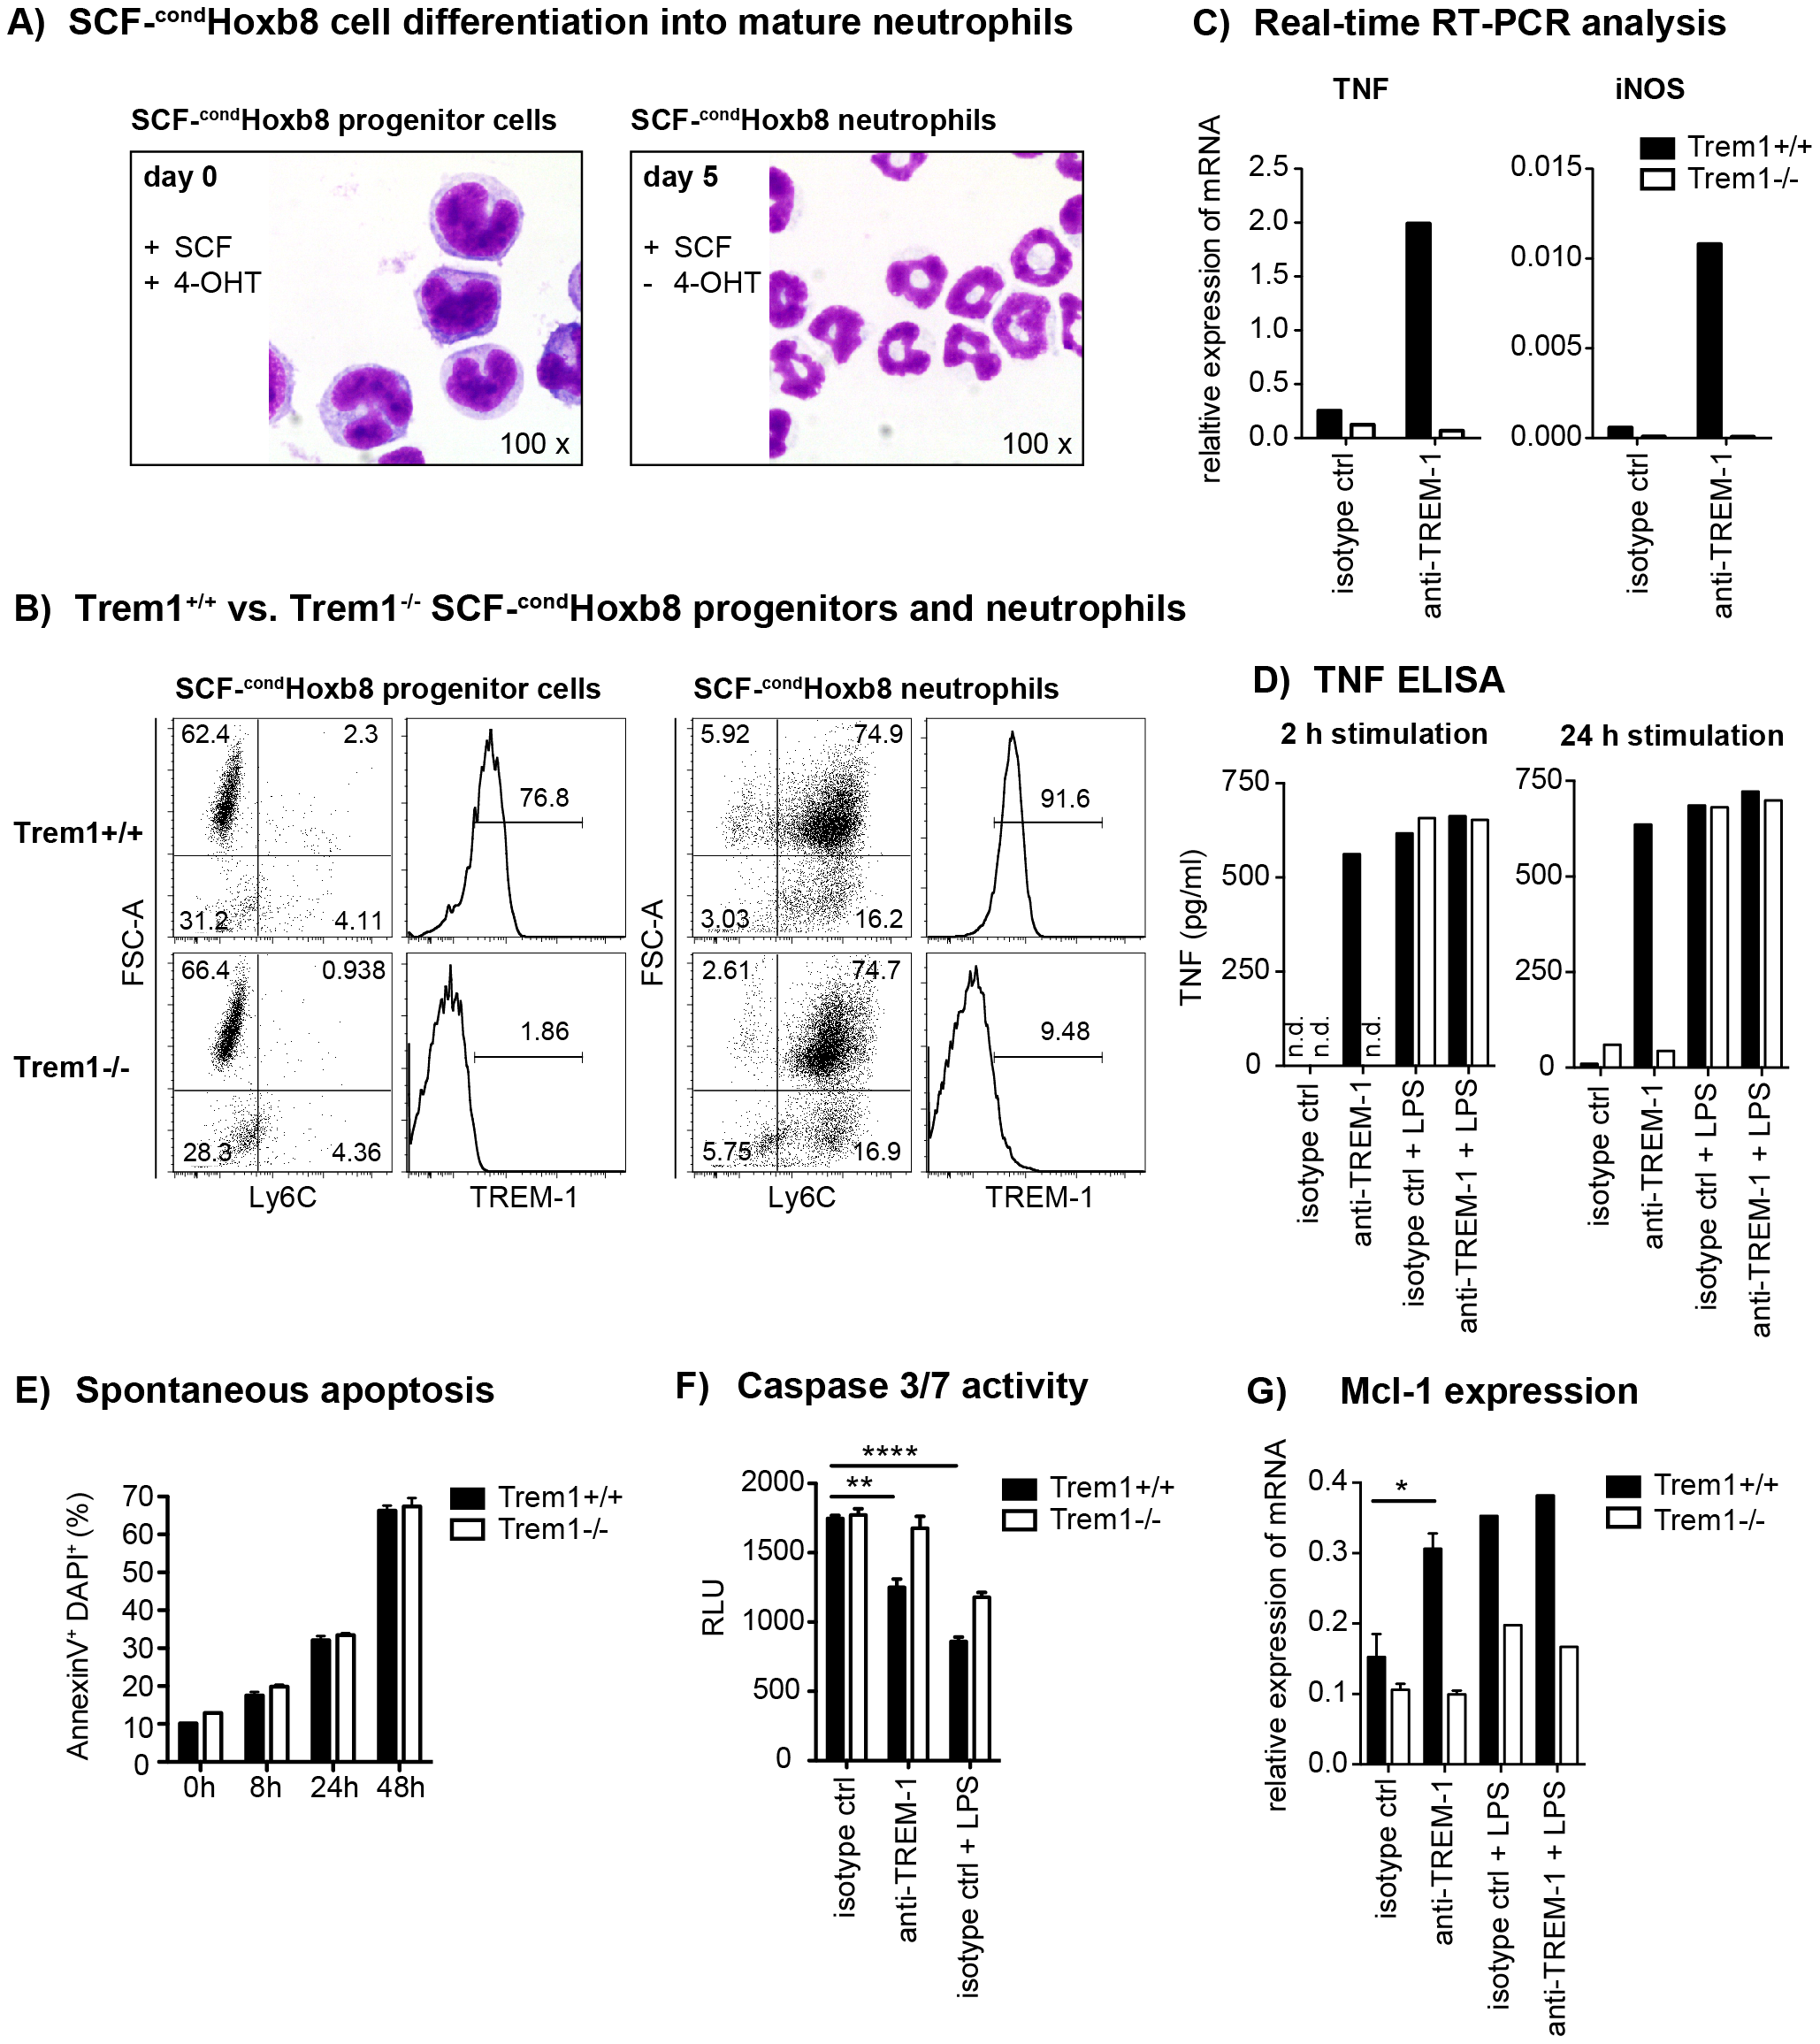 TREM-1 mediates TNF secretion and resistance to apoptosis in SCF-<sup>cond</sup>Hoxb8 progenitor-derived neutrophils.